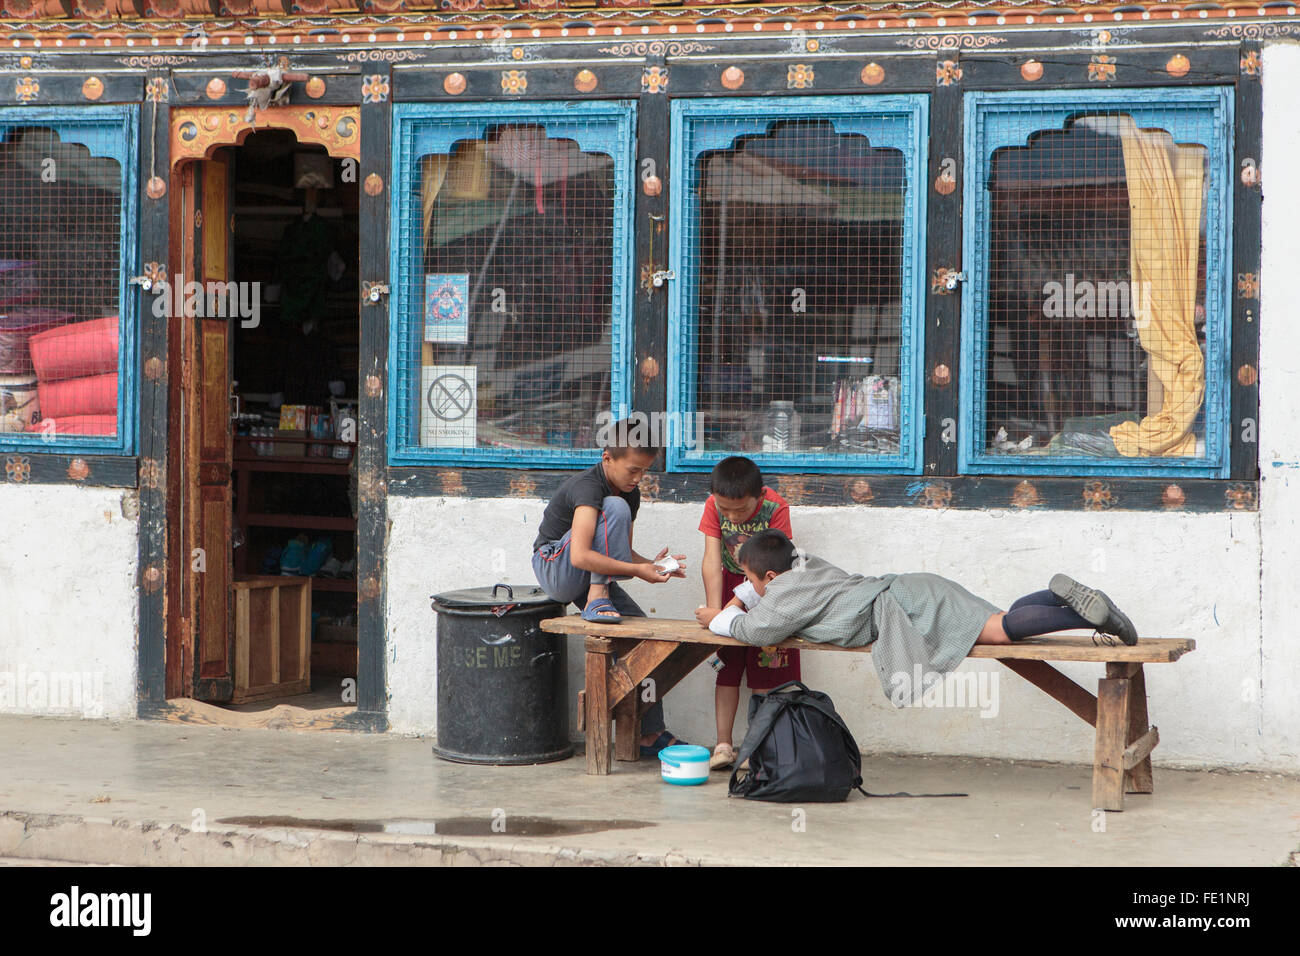 Children play outside a shop in Paro, Bhutan - Stock Image